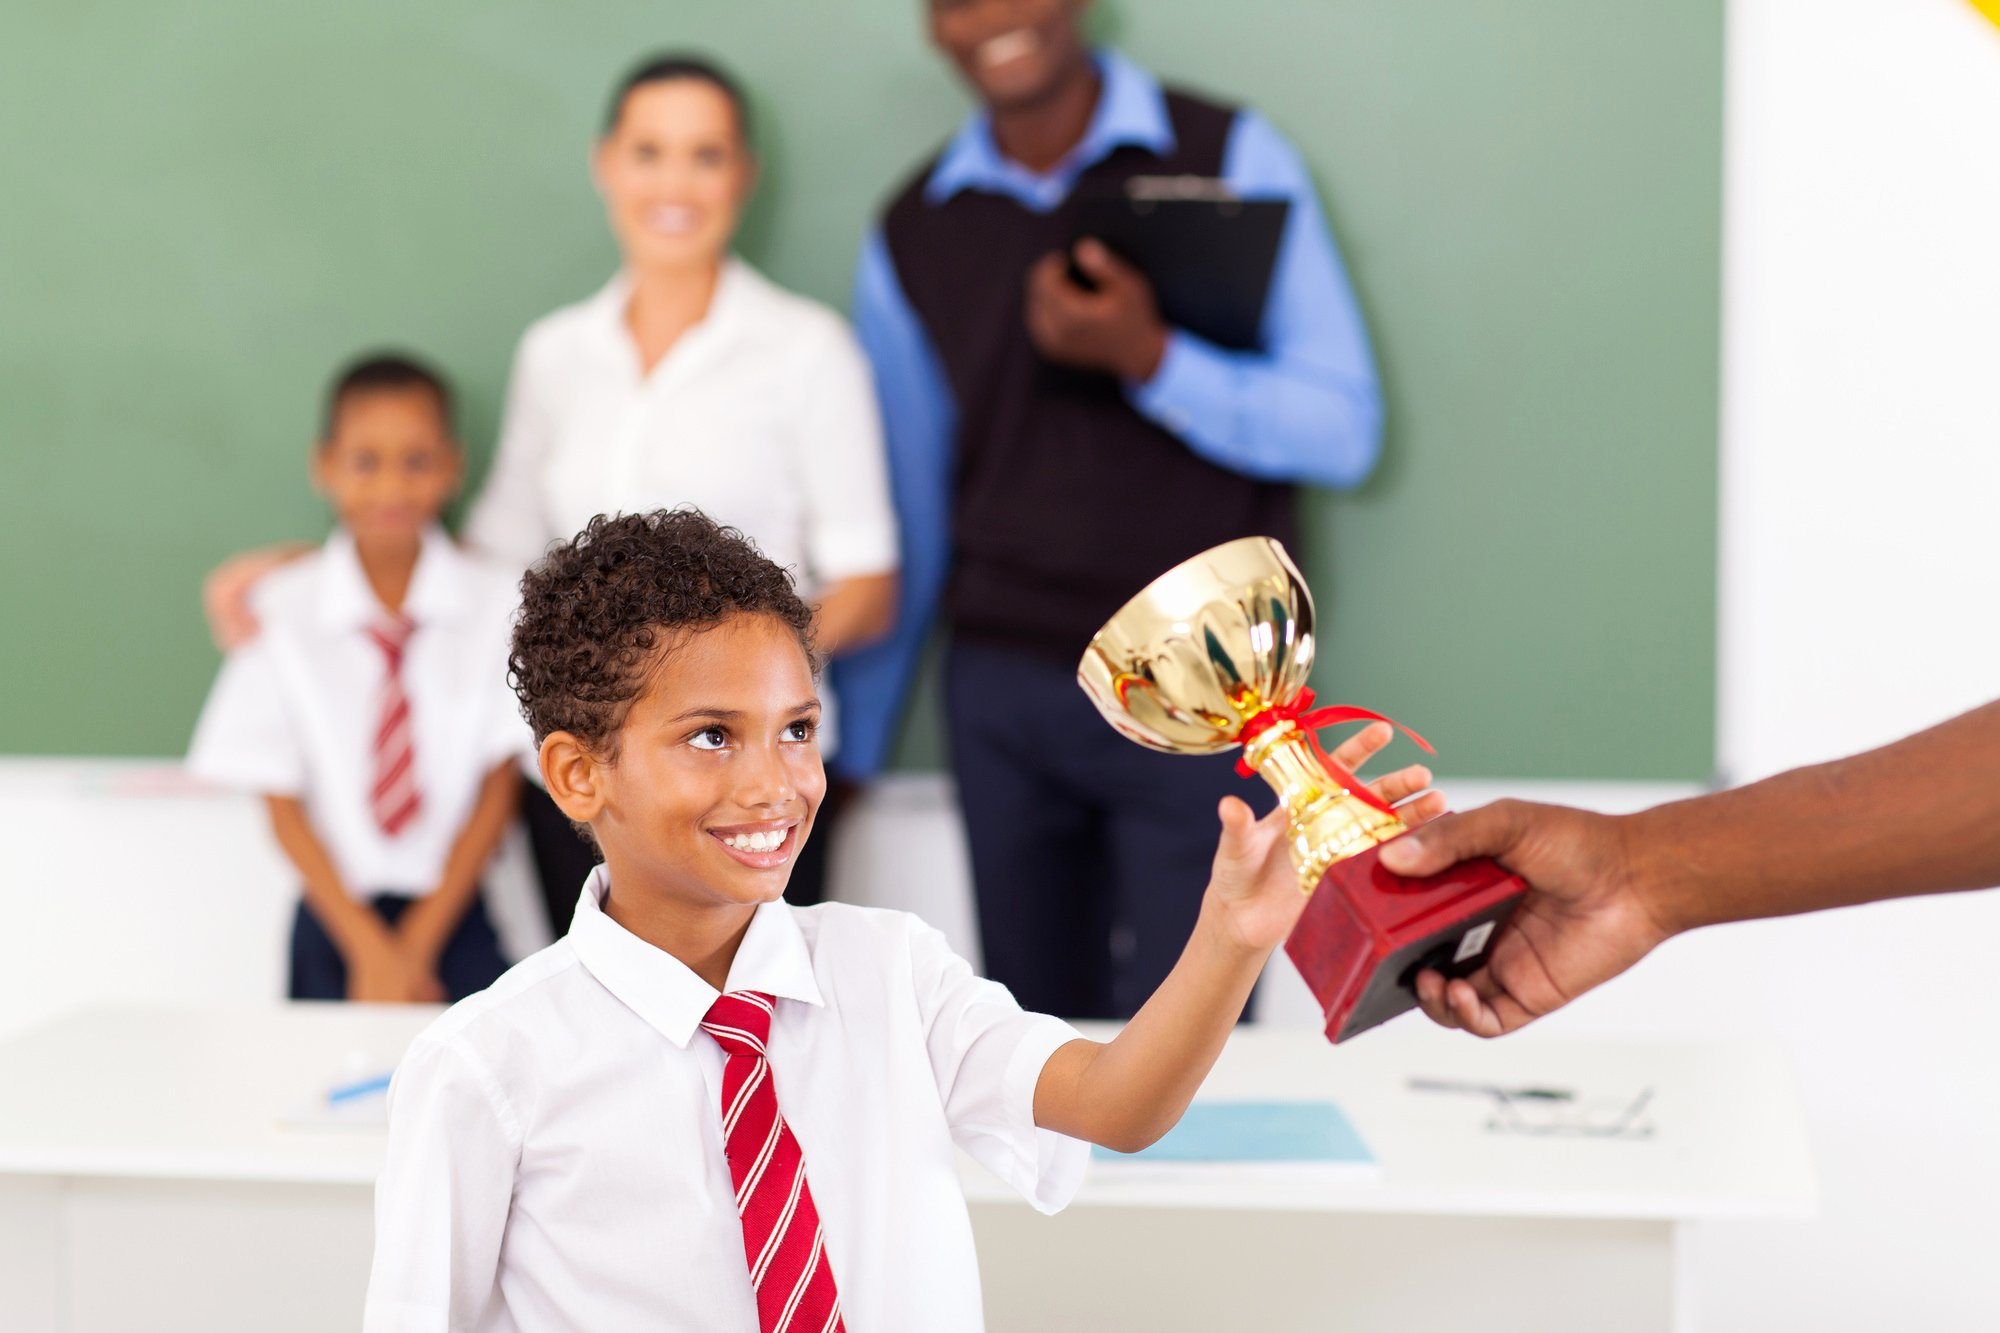 School Awards Ceremony Ideas Awesome How to Plan A School Awards Ceremony